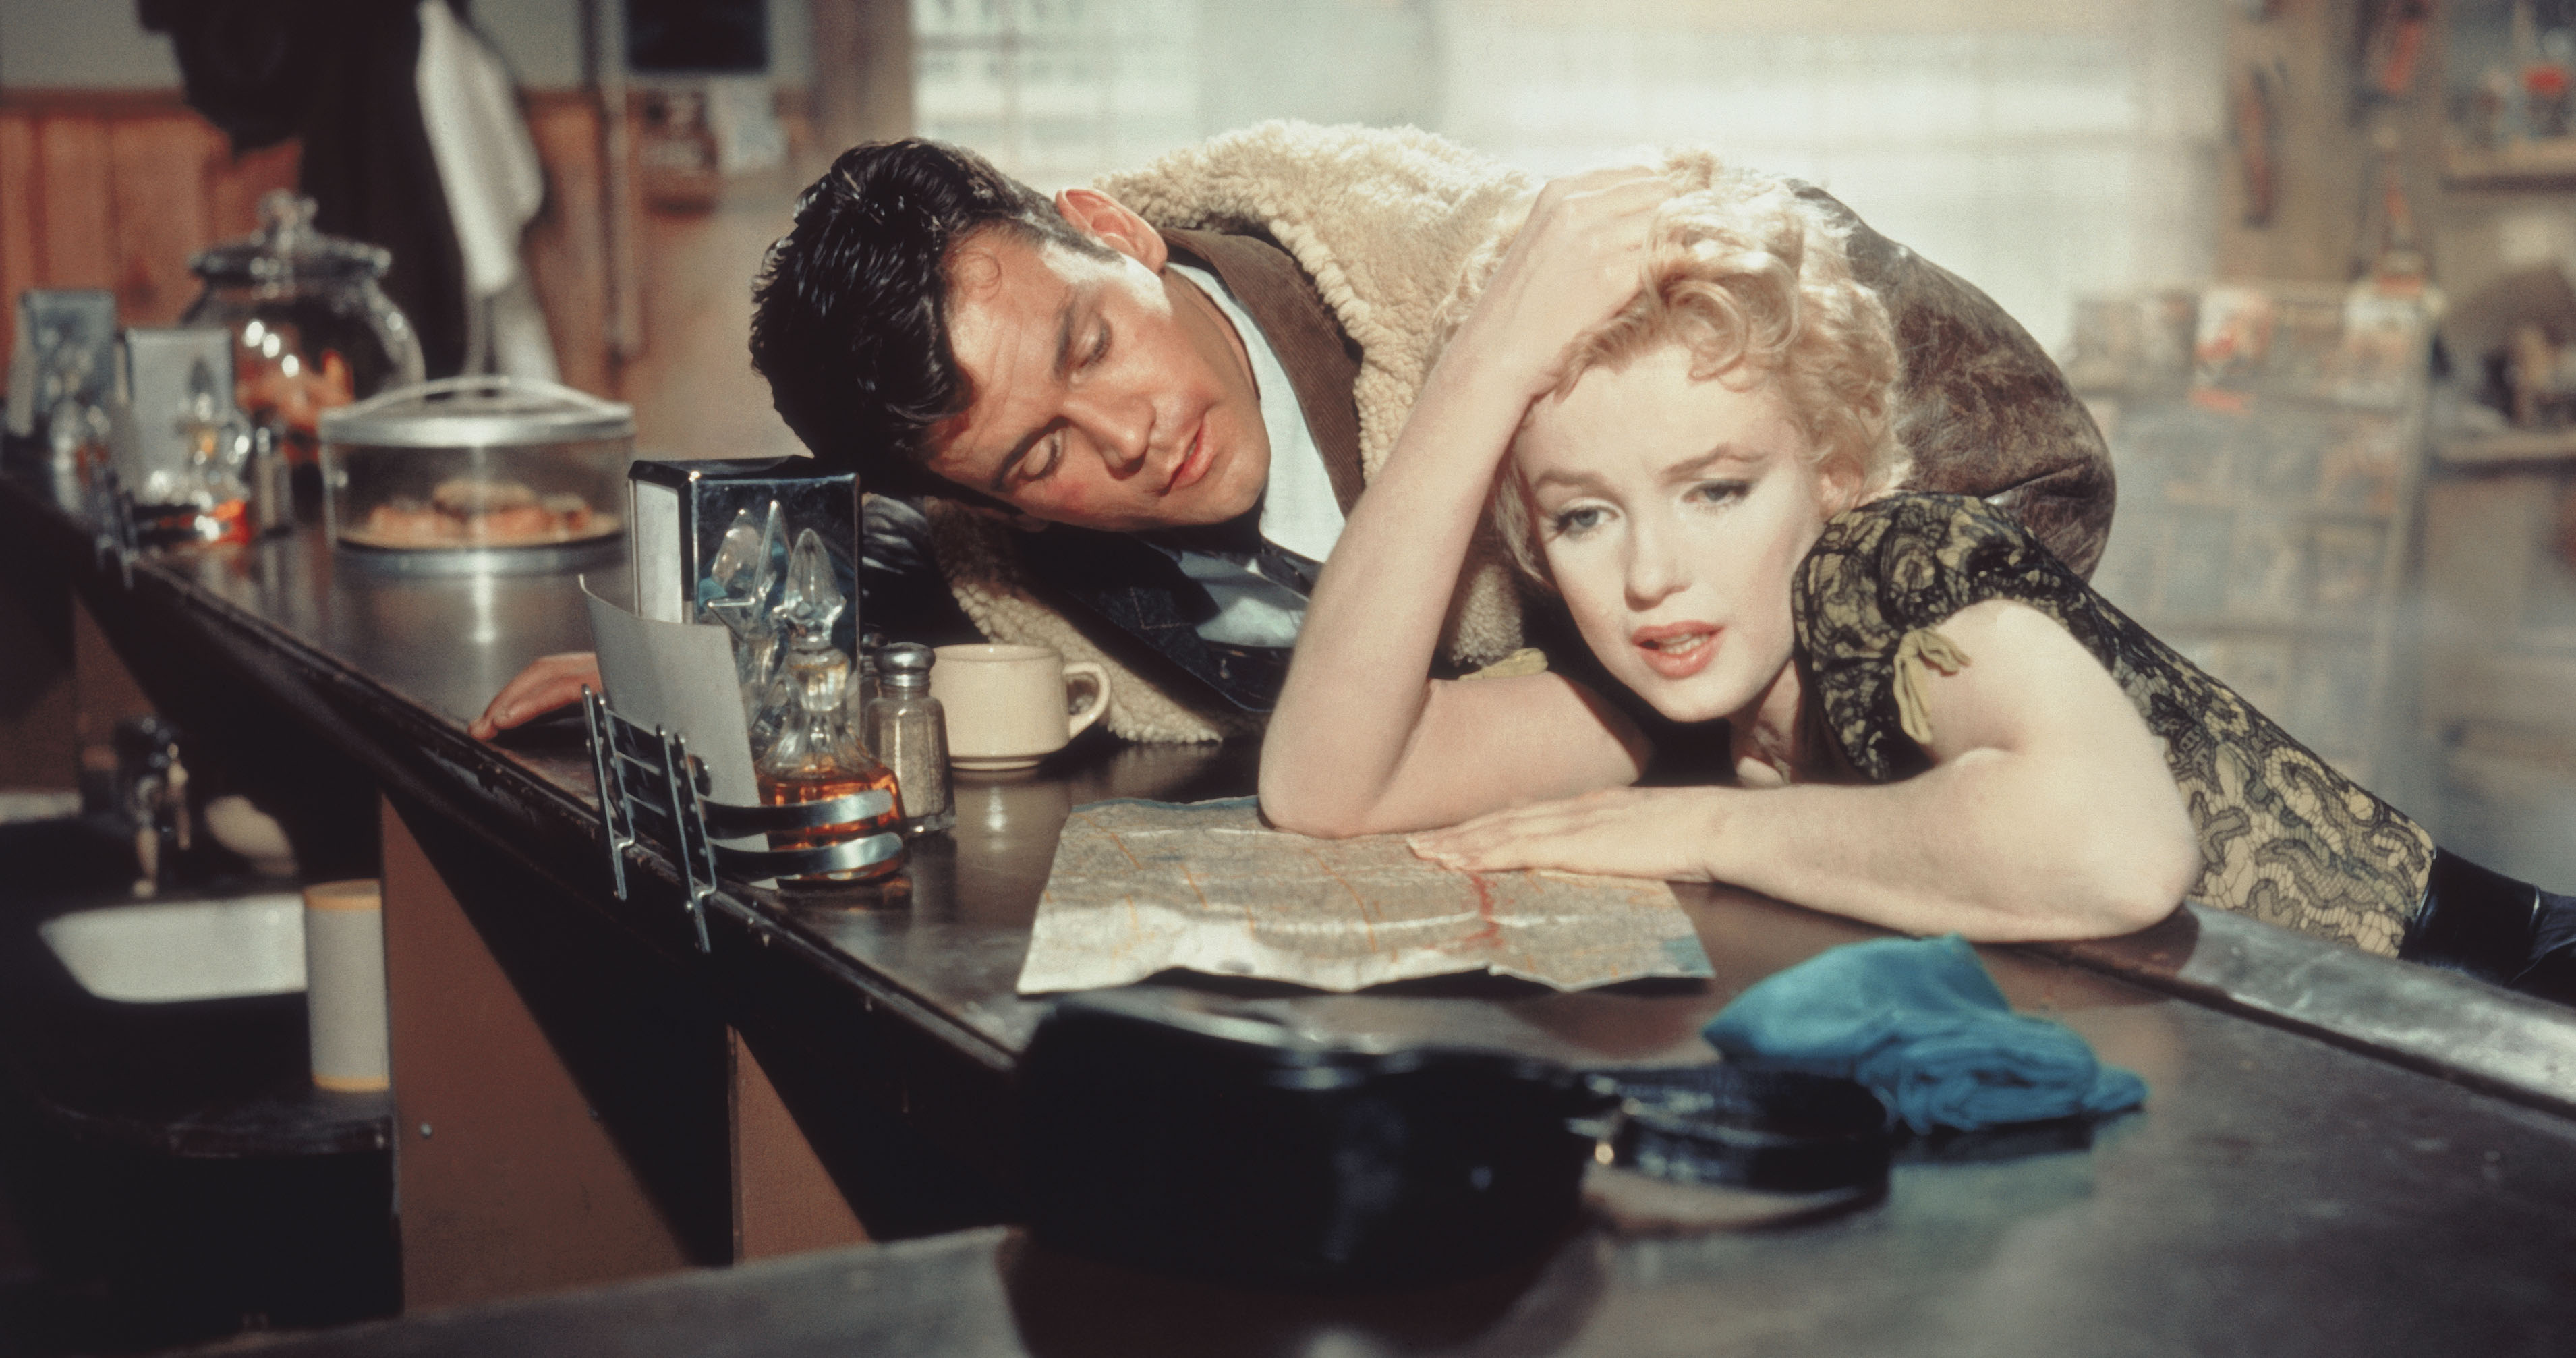 ExclusiveDon Murray Recalls 'Bus Stop' Costar Marilyn Monroe's Struggle With Anxiety: 'She Was Very, Very Nervous'